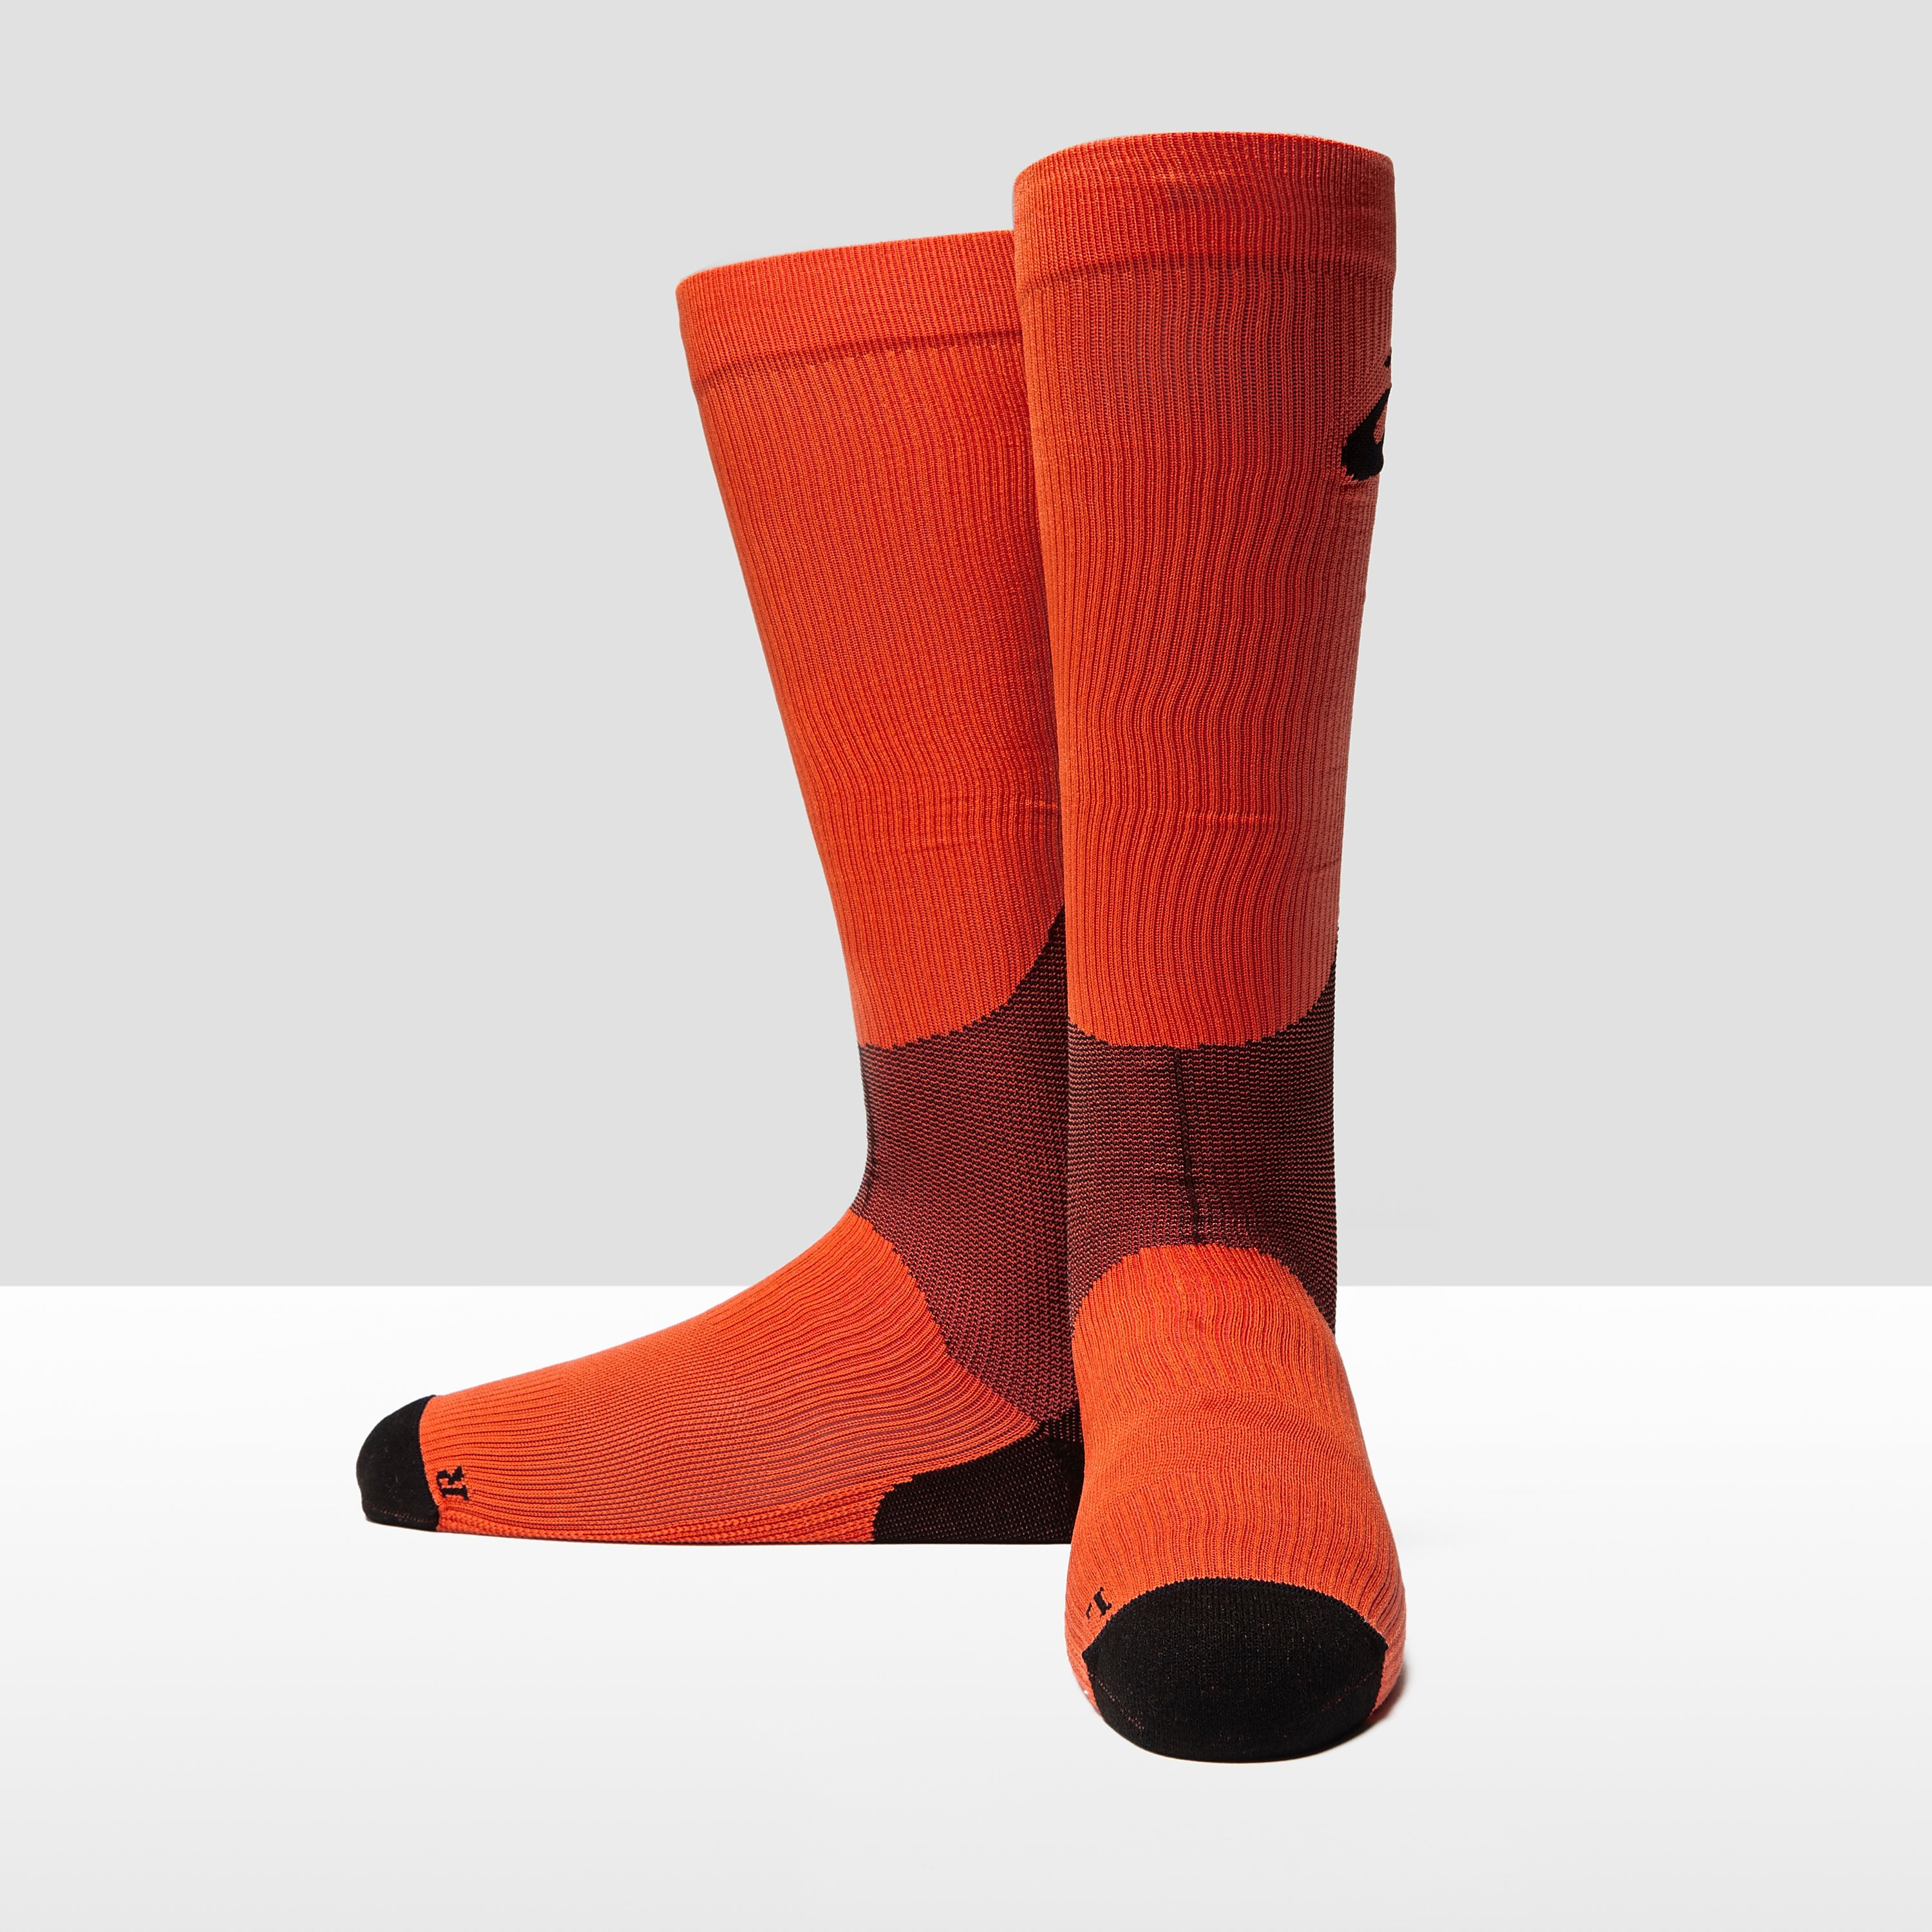 Asics Compression 2200 Series Men's Sock